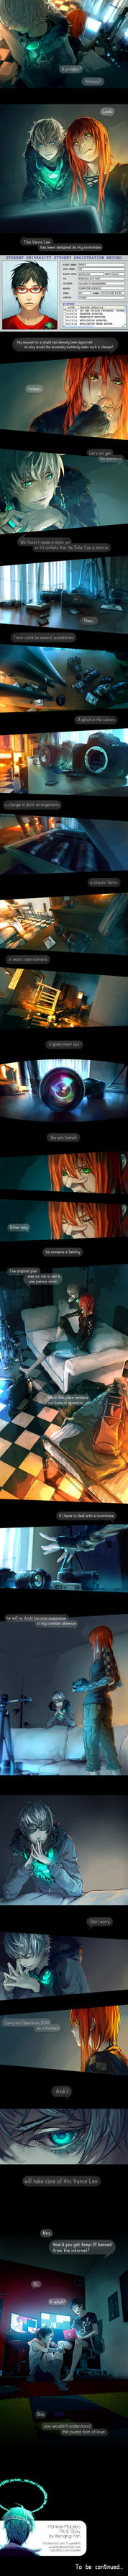 Fisheye Placebo: Ch0 - Part 2 by yuumei